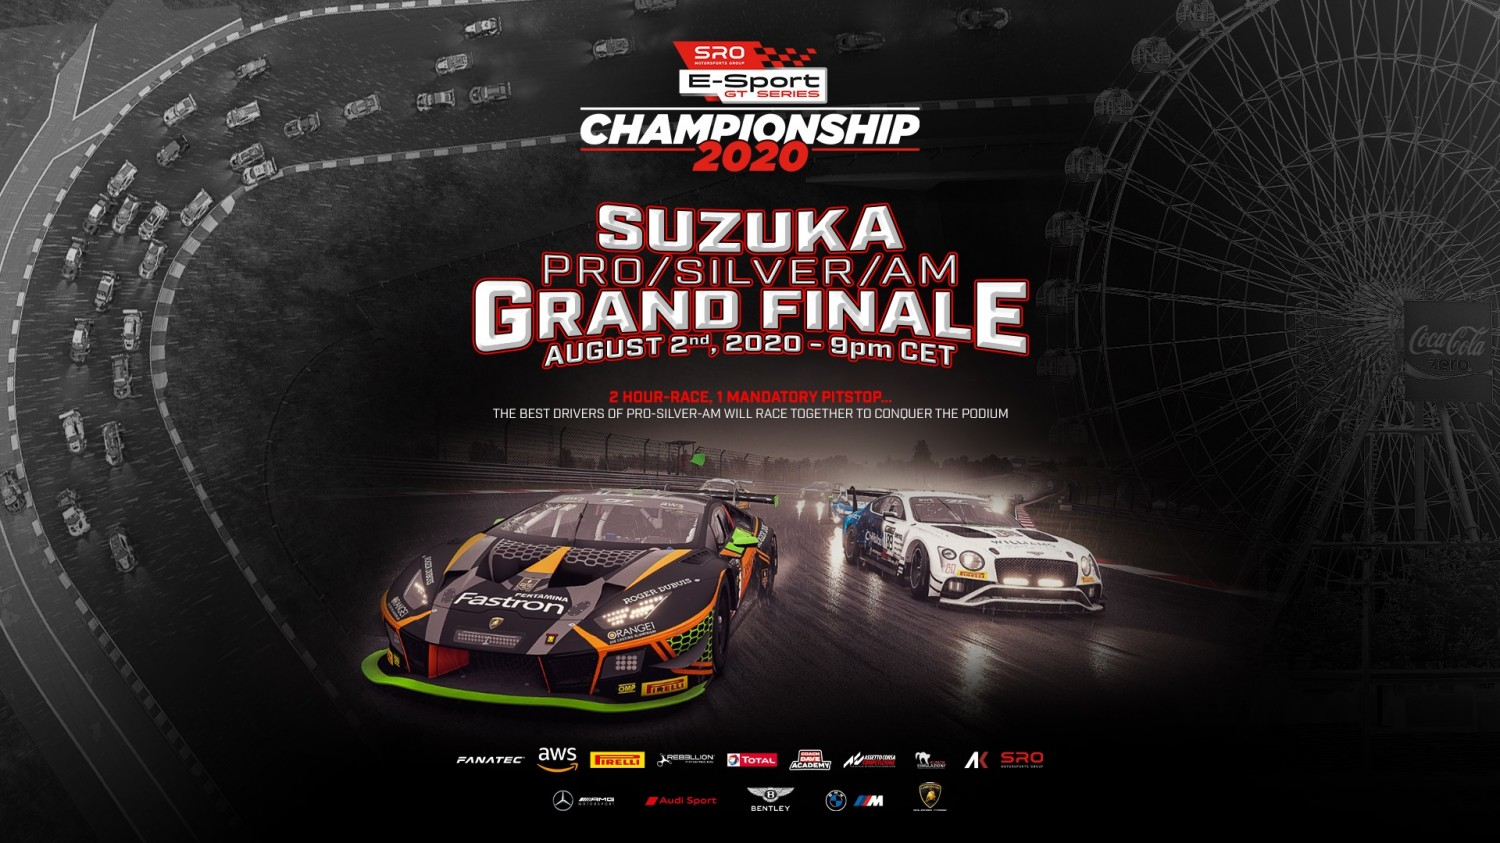 SRO E-Sport GT Series set for winner-takes-all finale at Suzuka